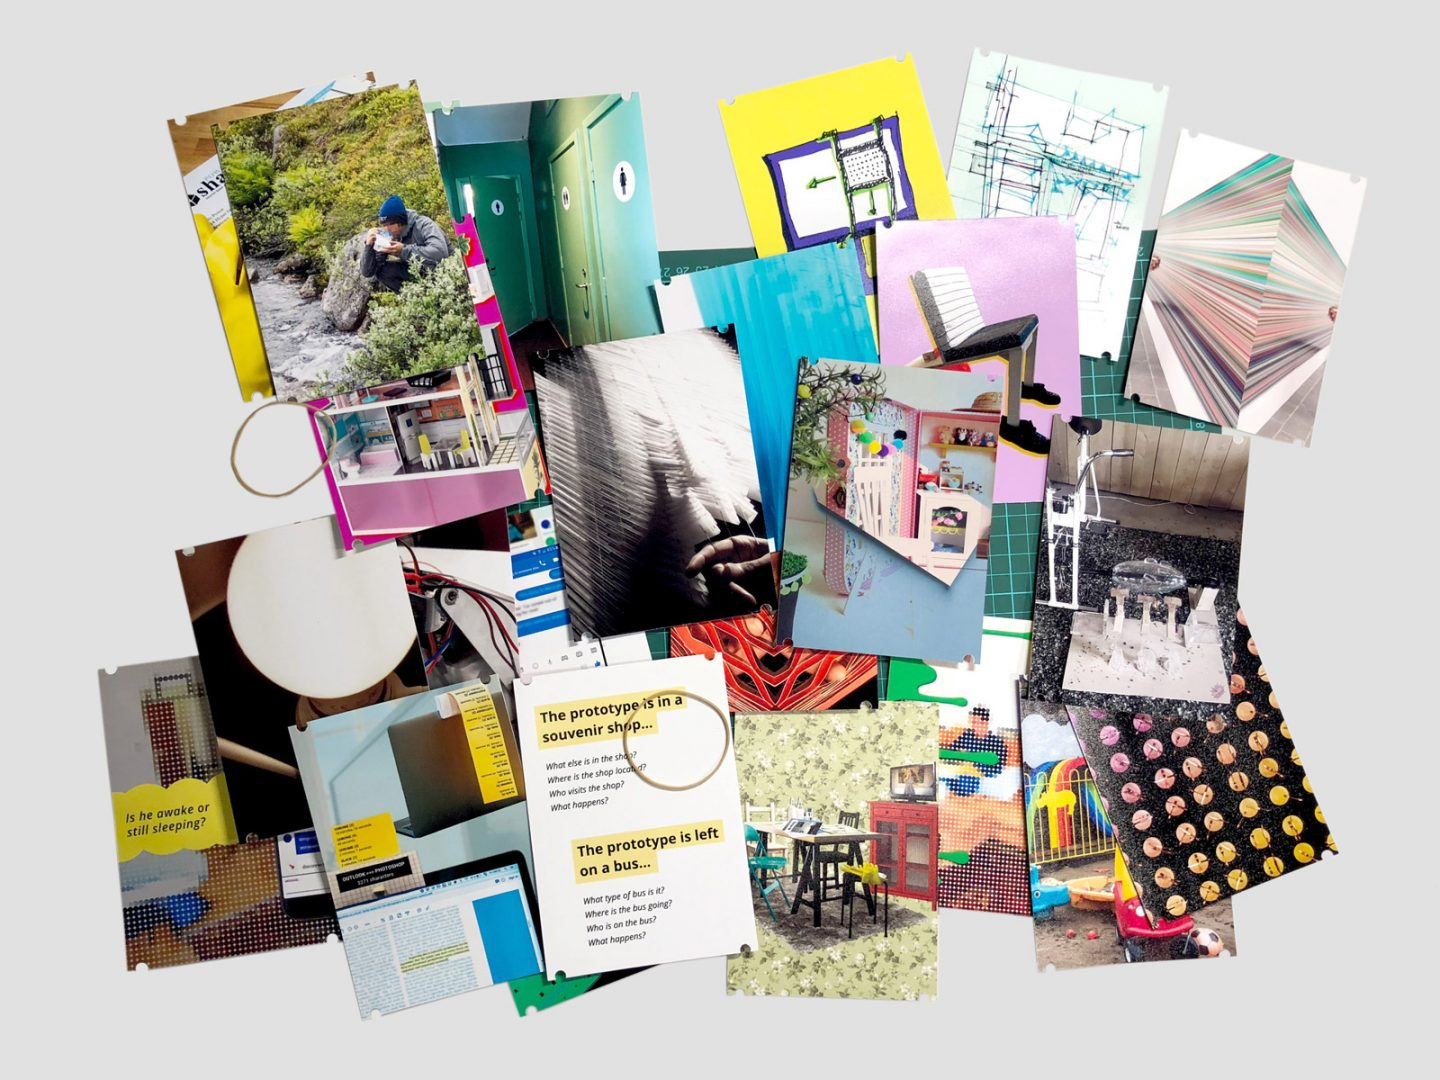 Cards (image or abstract sides) can be sorted, shuffled, and mingled as a way to deconstruct and reconstruct a design space